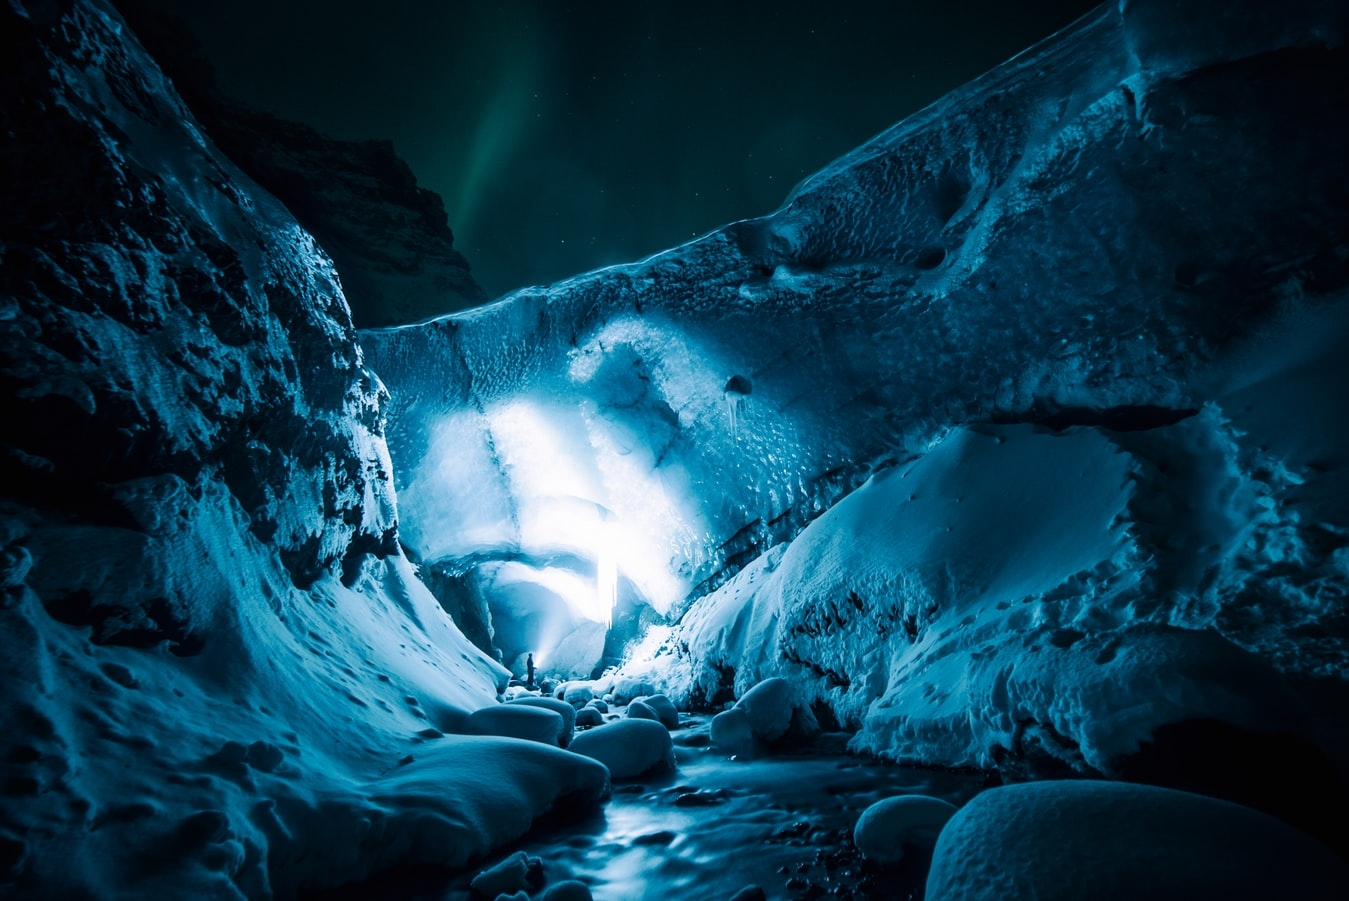 MISTERI E CONTRASTI DELLIINVERNO ISLANDESE - National geographic expeditions